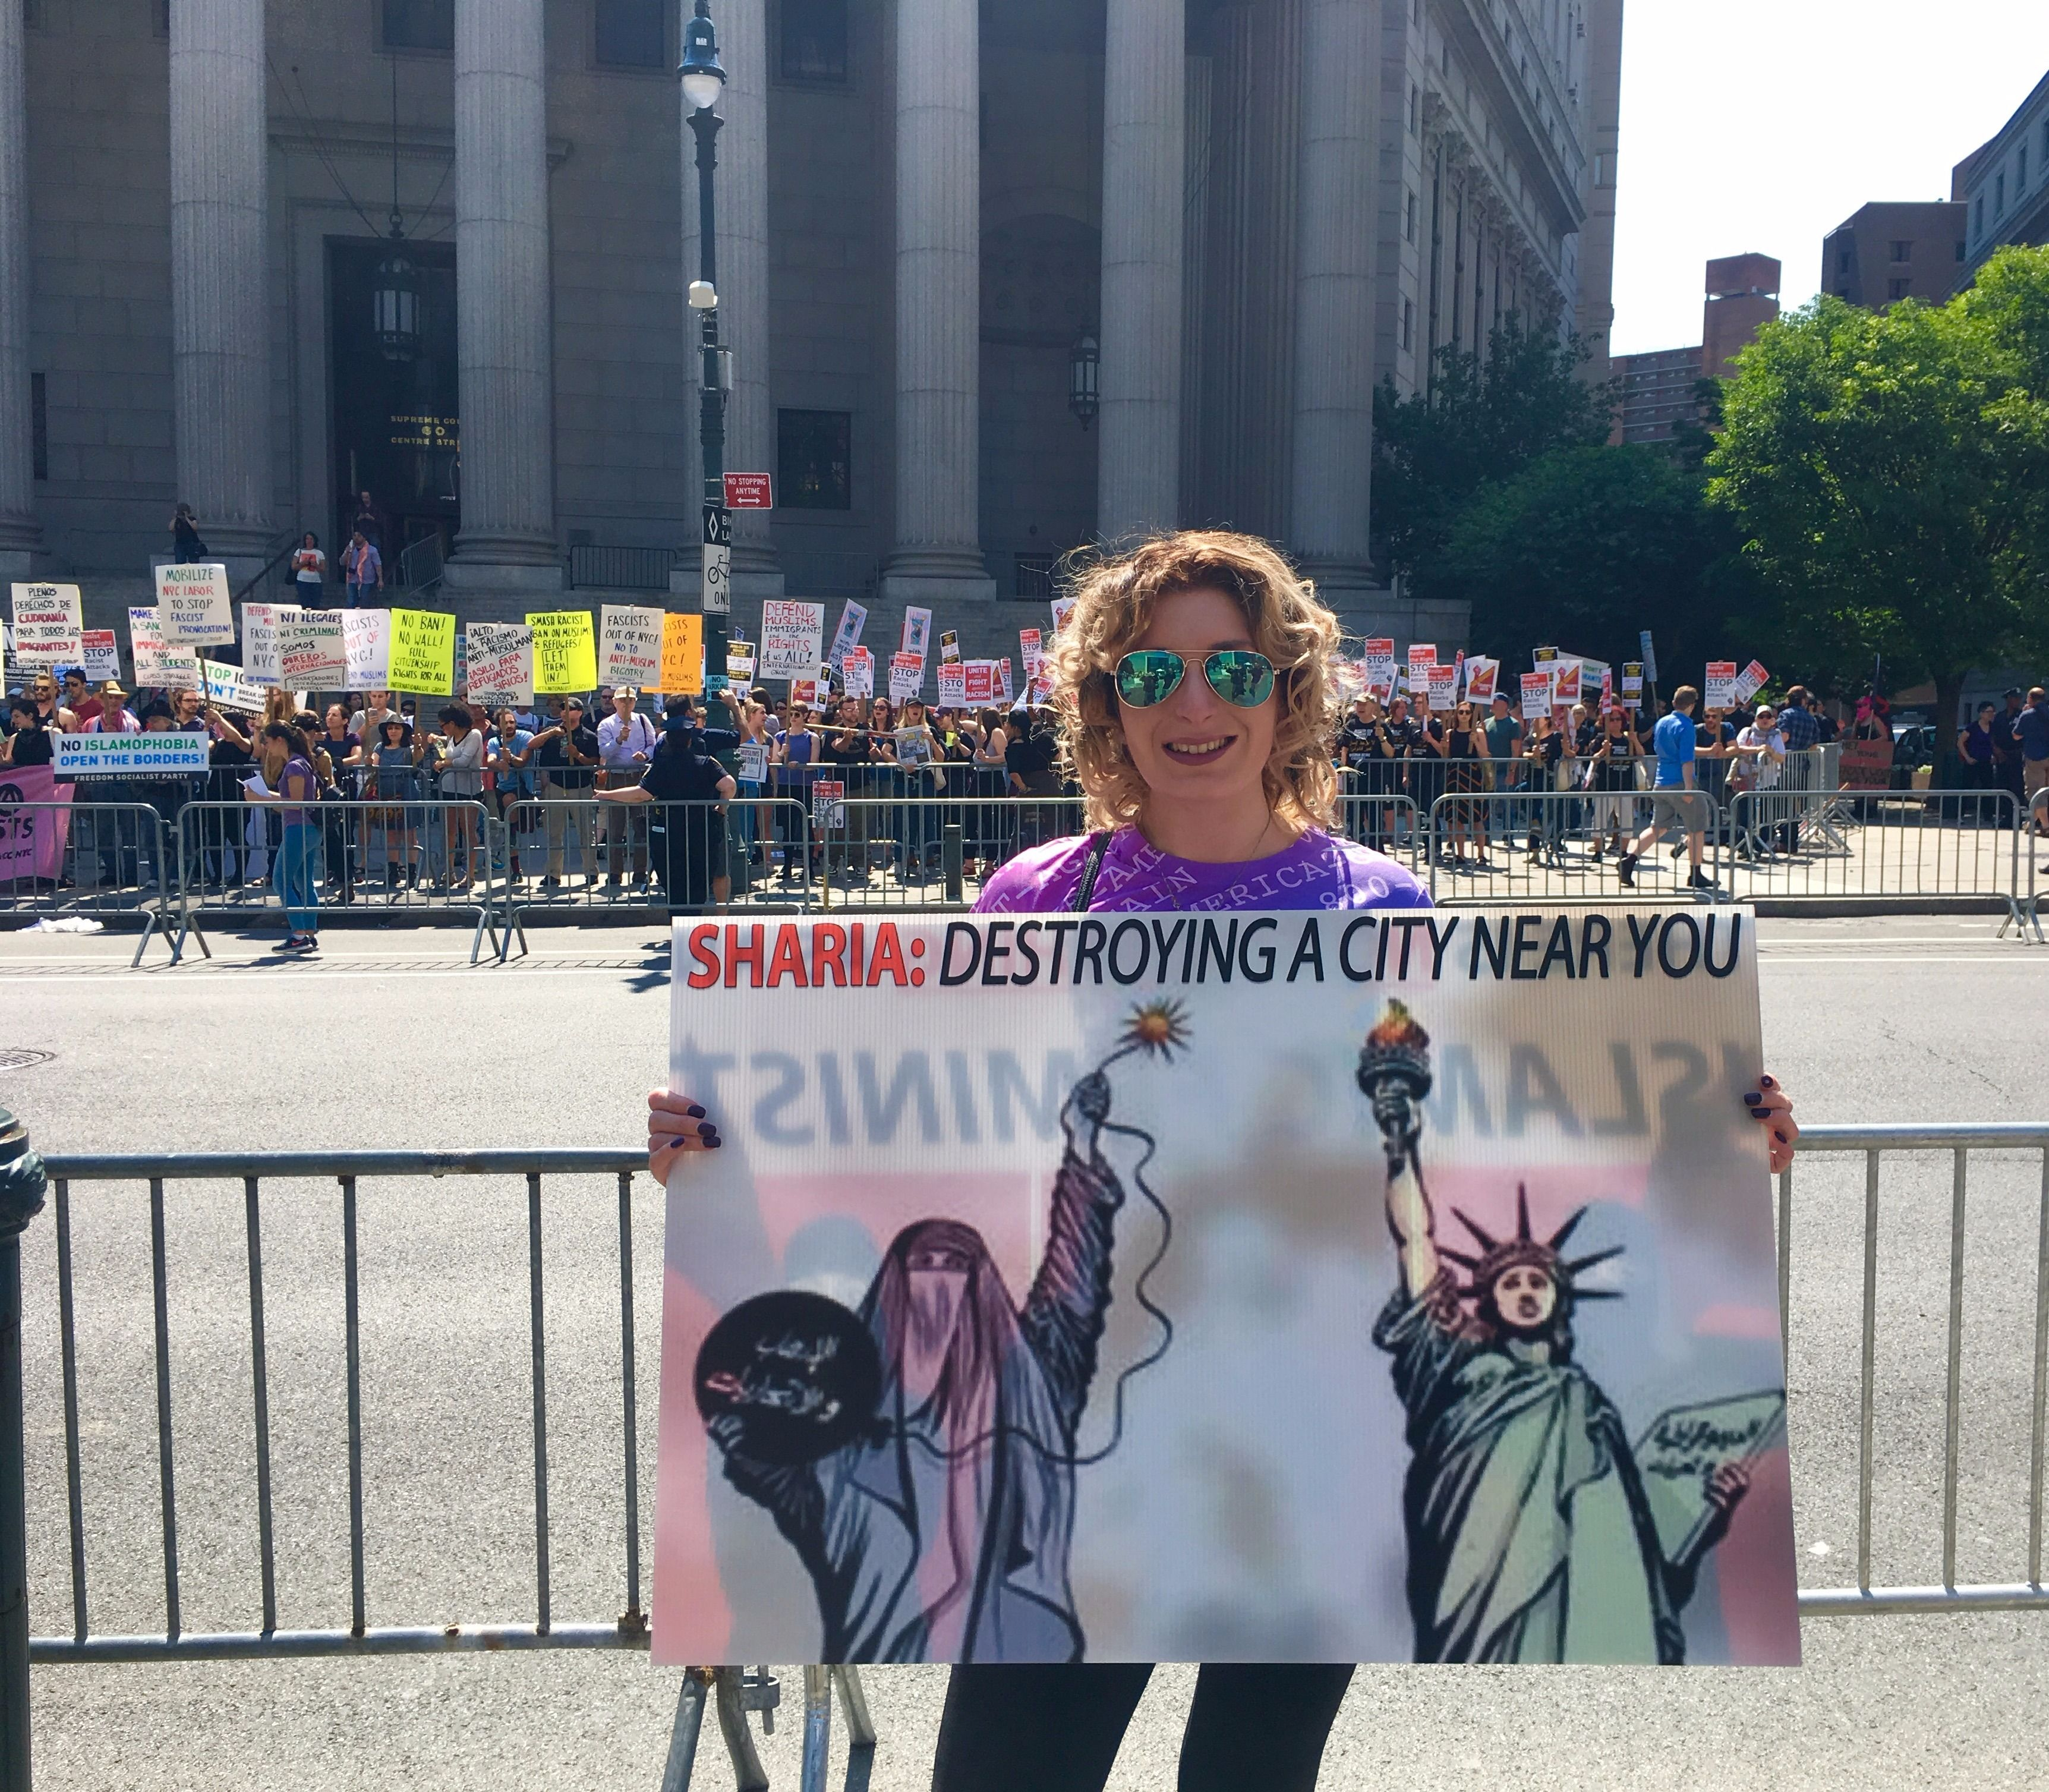 Fr-right activist Laura Loomer holds a one-woman counter-protest.